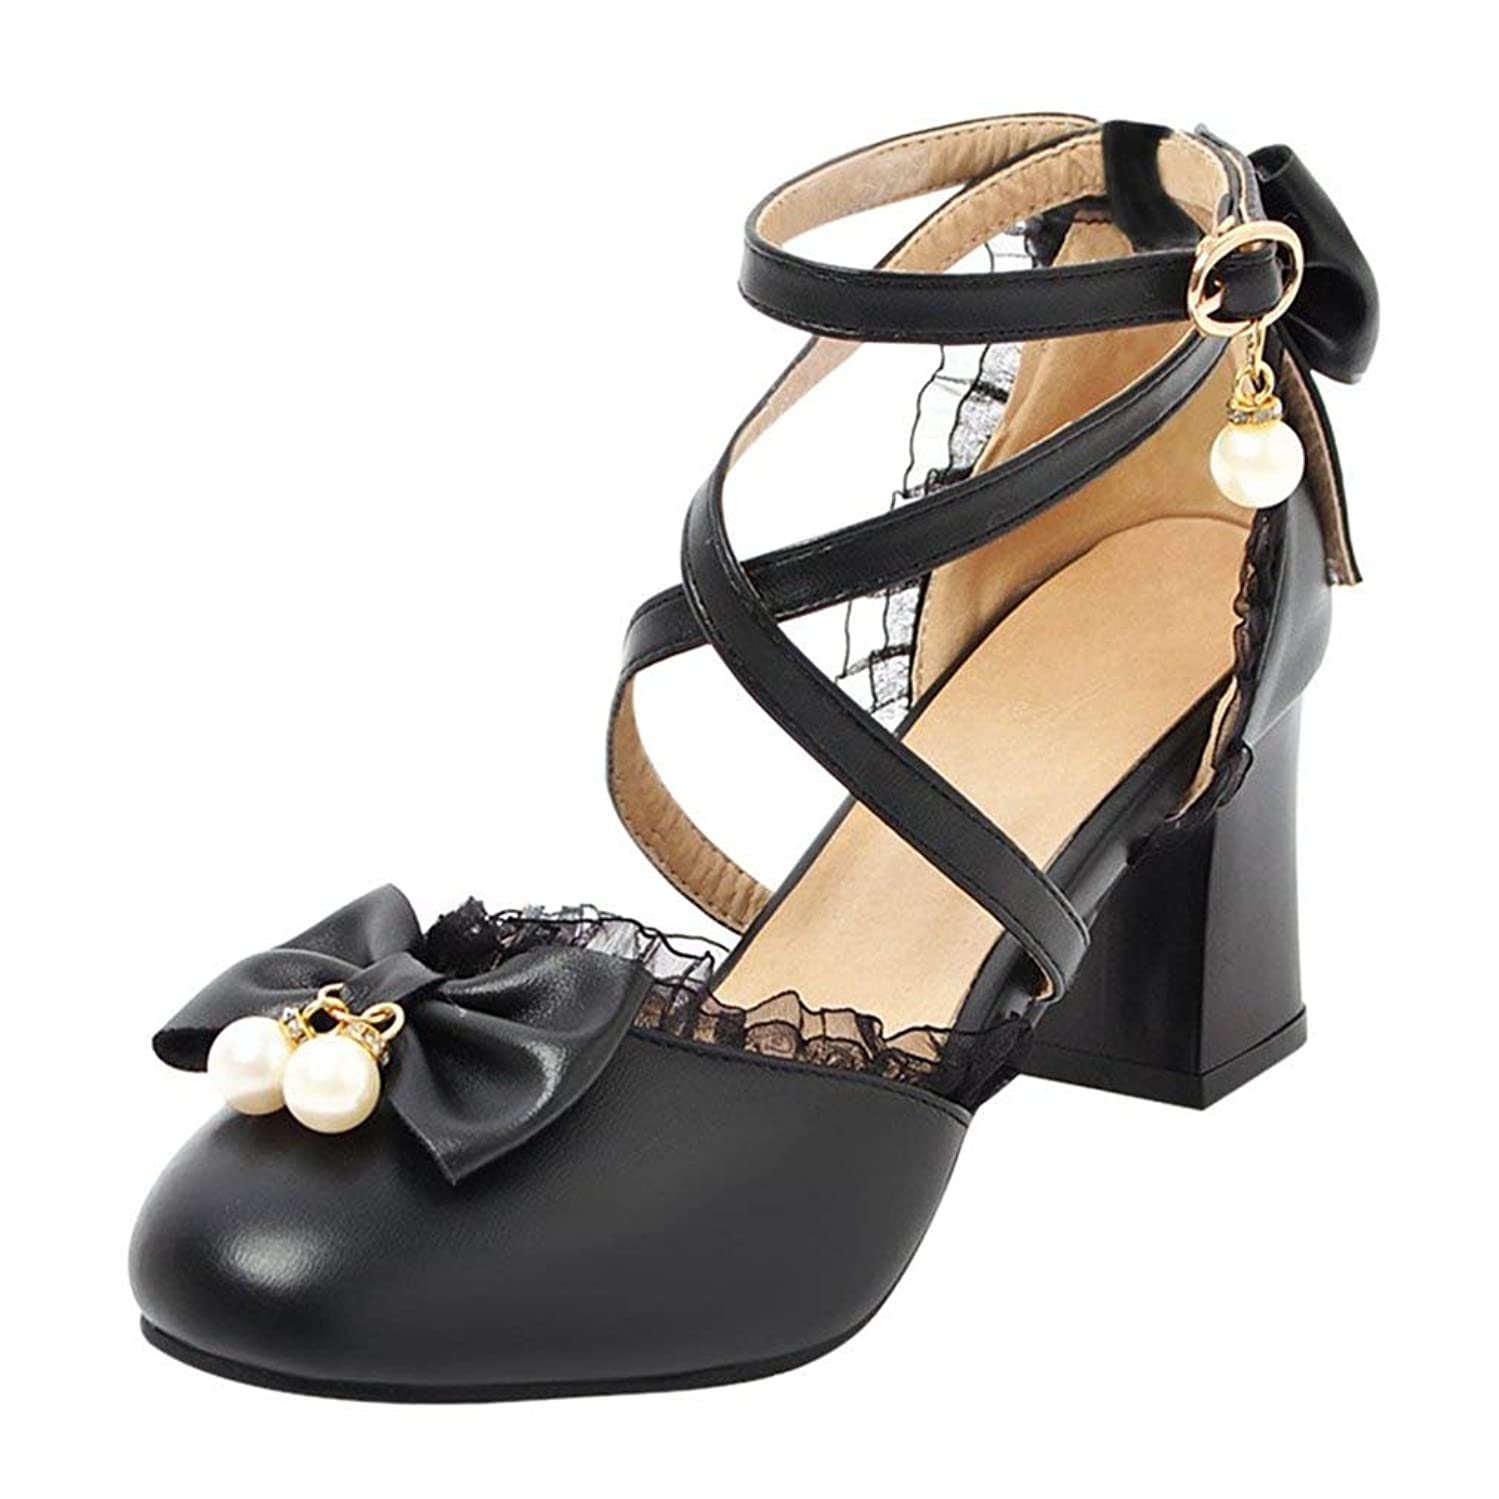 COOLULU Womens Mary Janes Pumps Mid Block Heel Court Shoes with Bow Pearls Ankle Strap Buckle Lolita Shoes